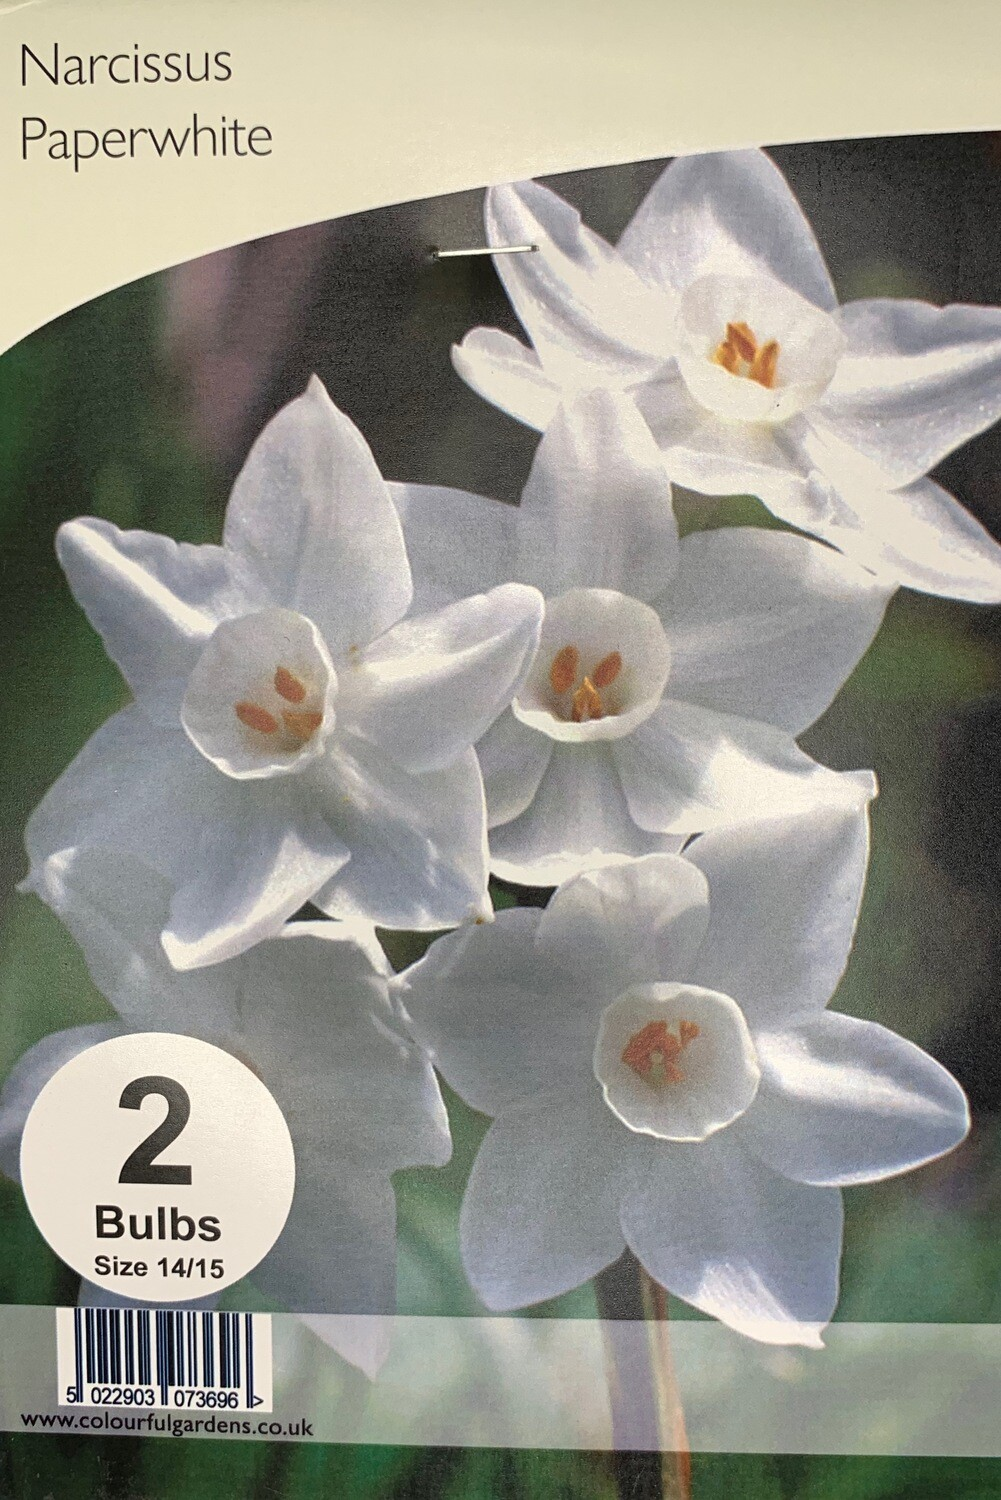 Narcissus Paperwhite Bulbs